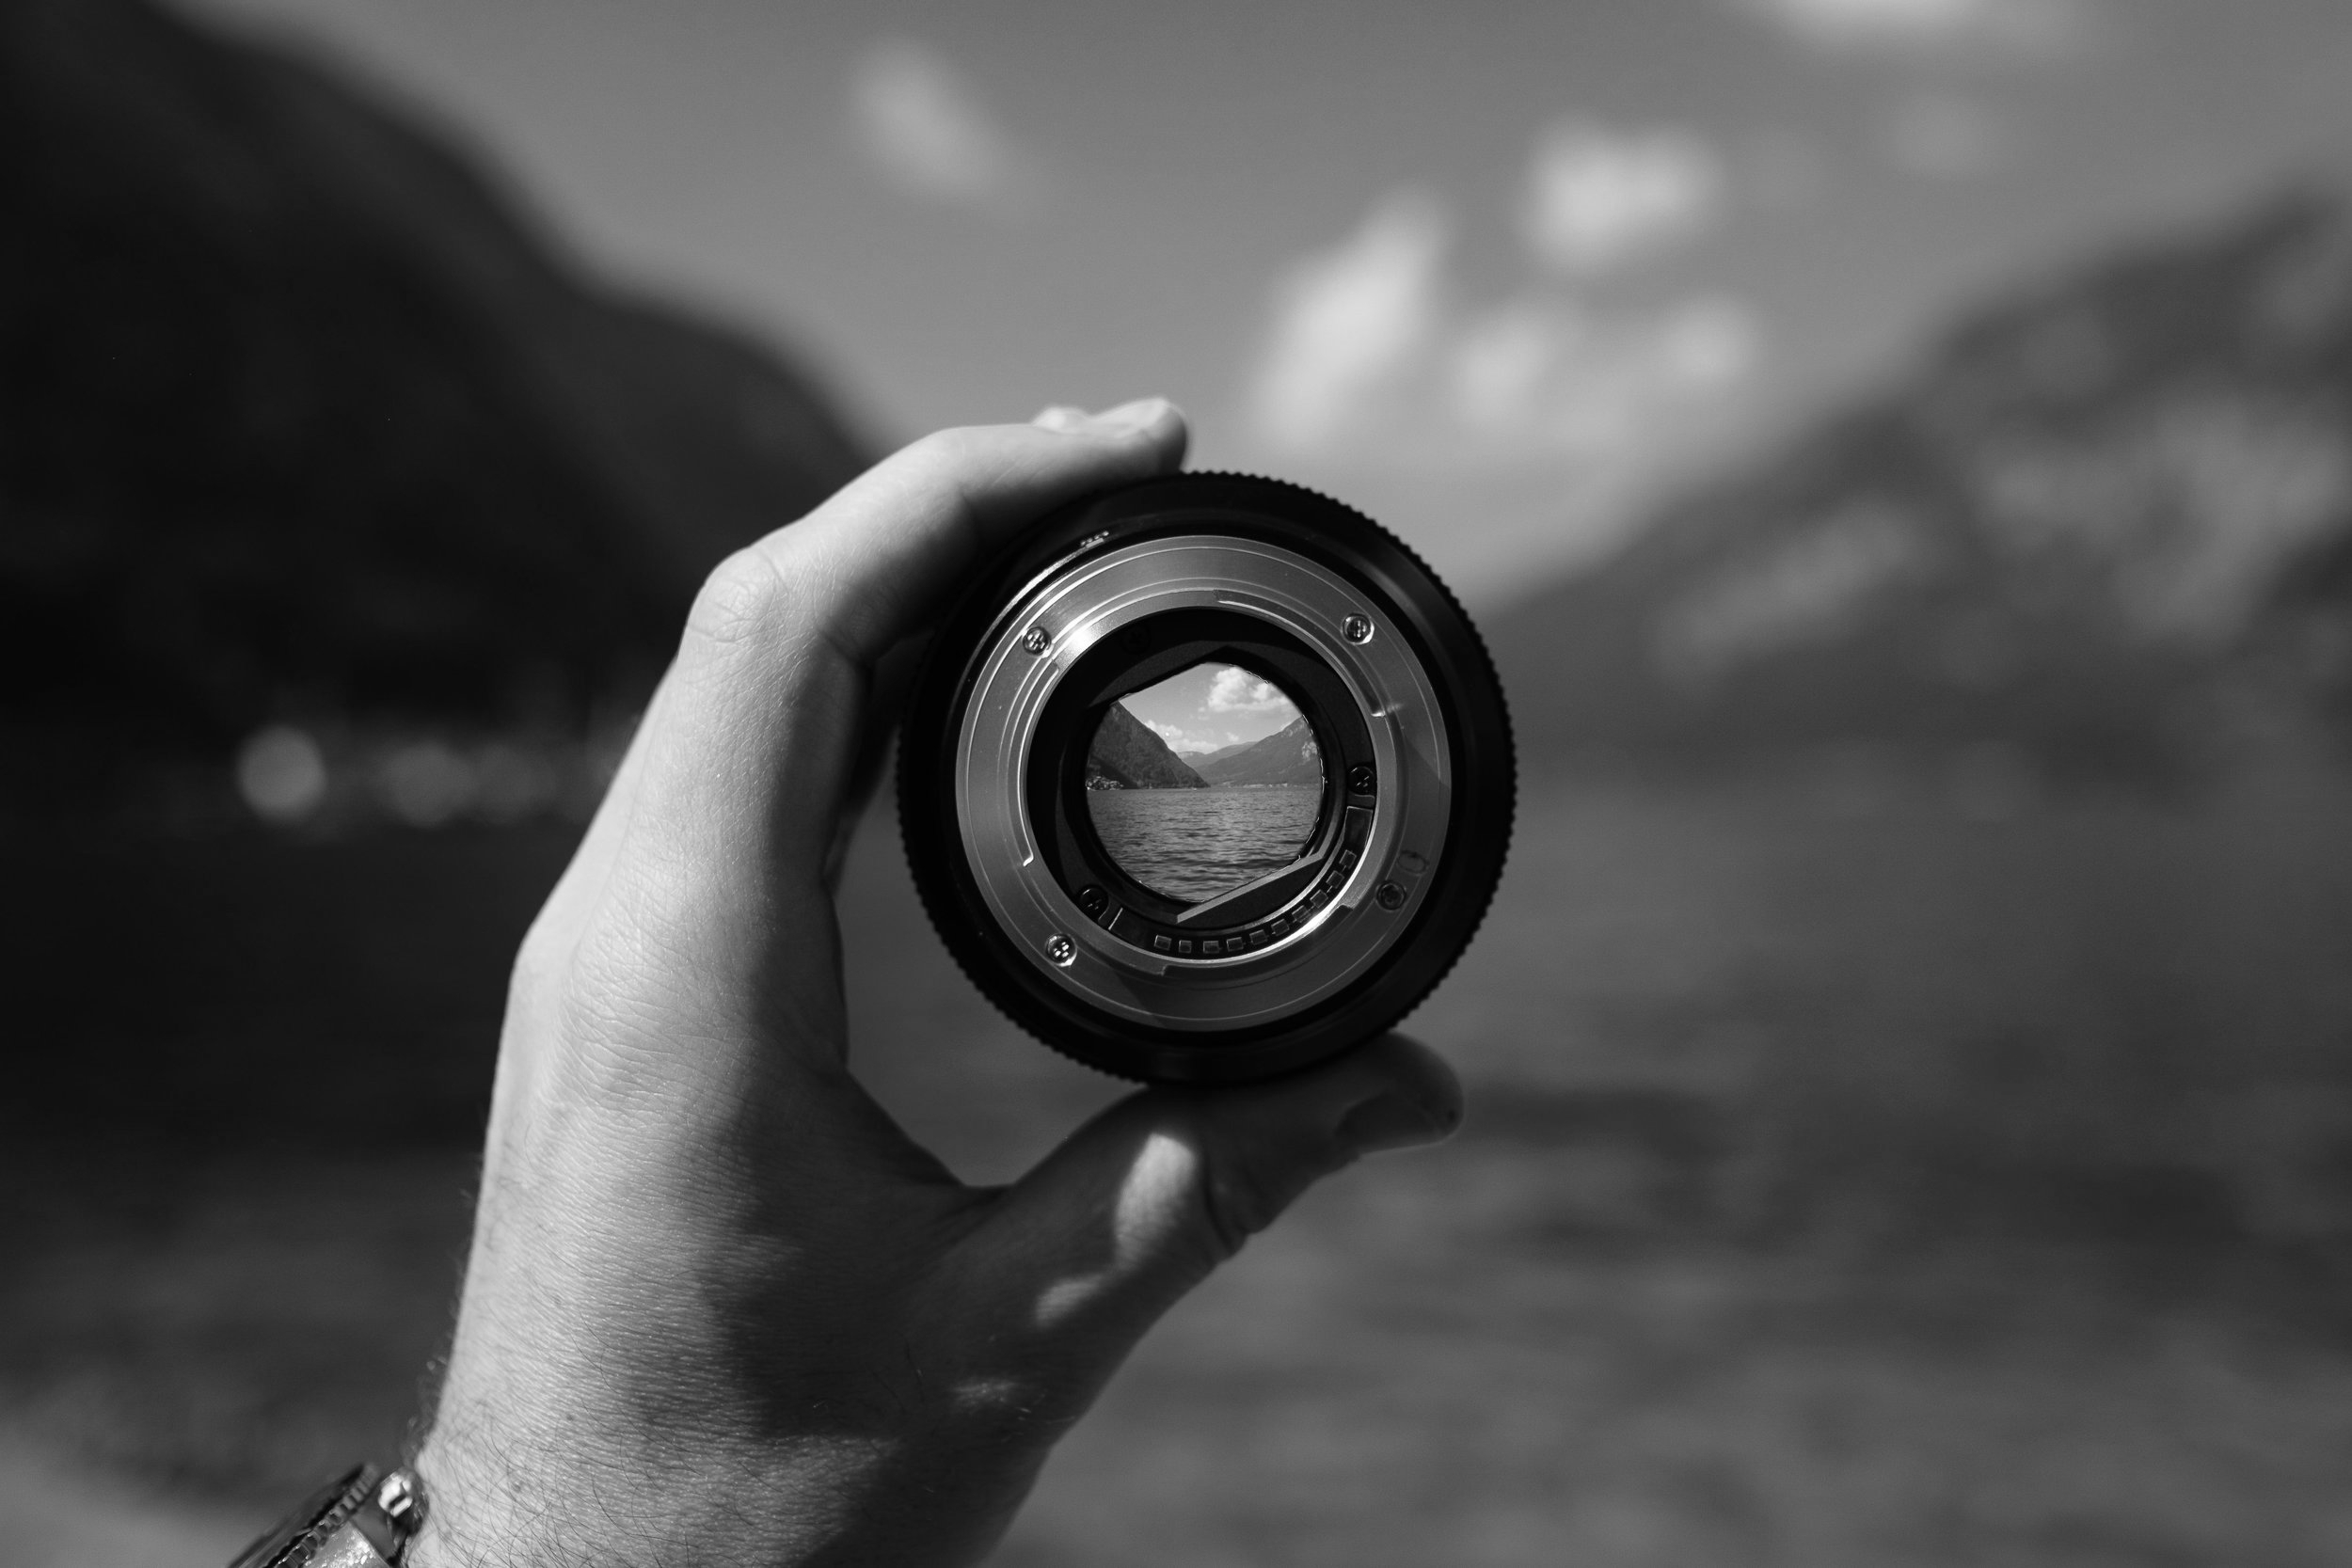 Camera lens - accompanies articles about presence in coaching